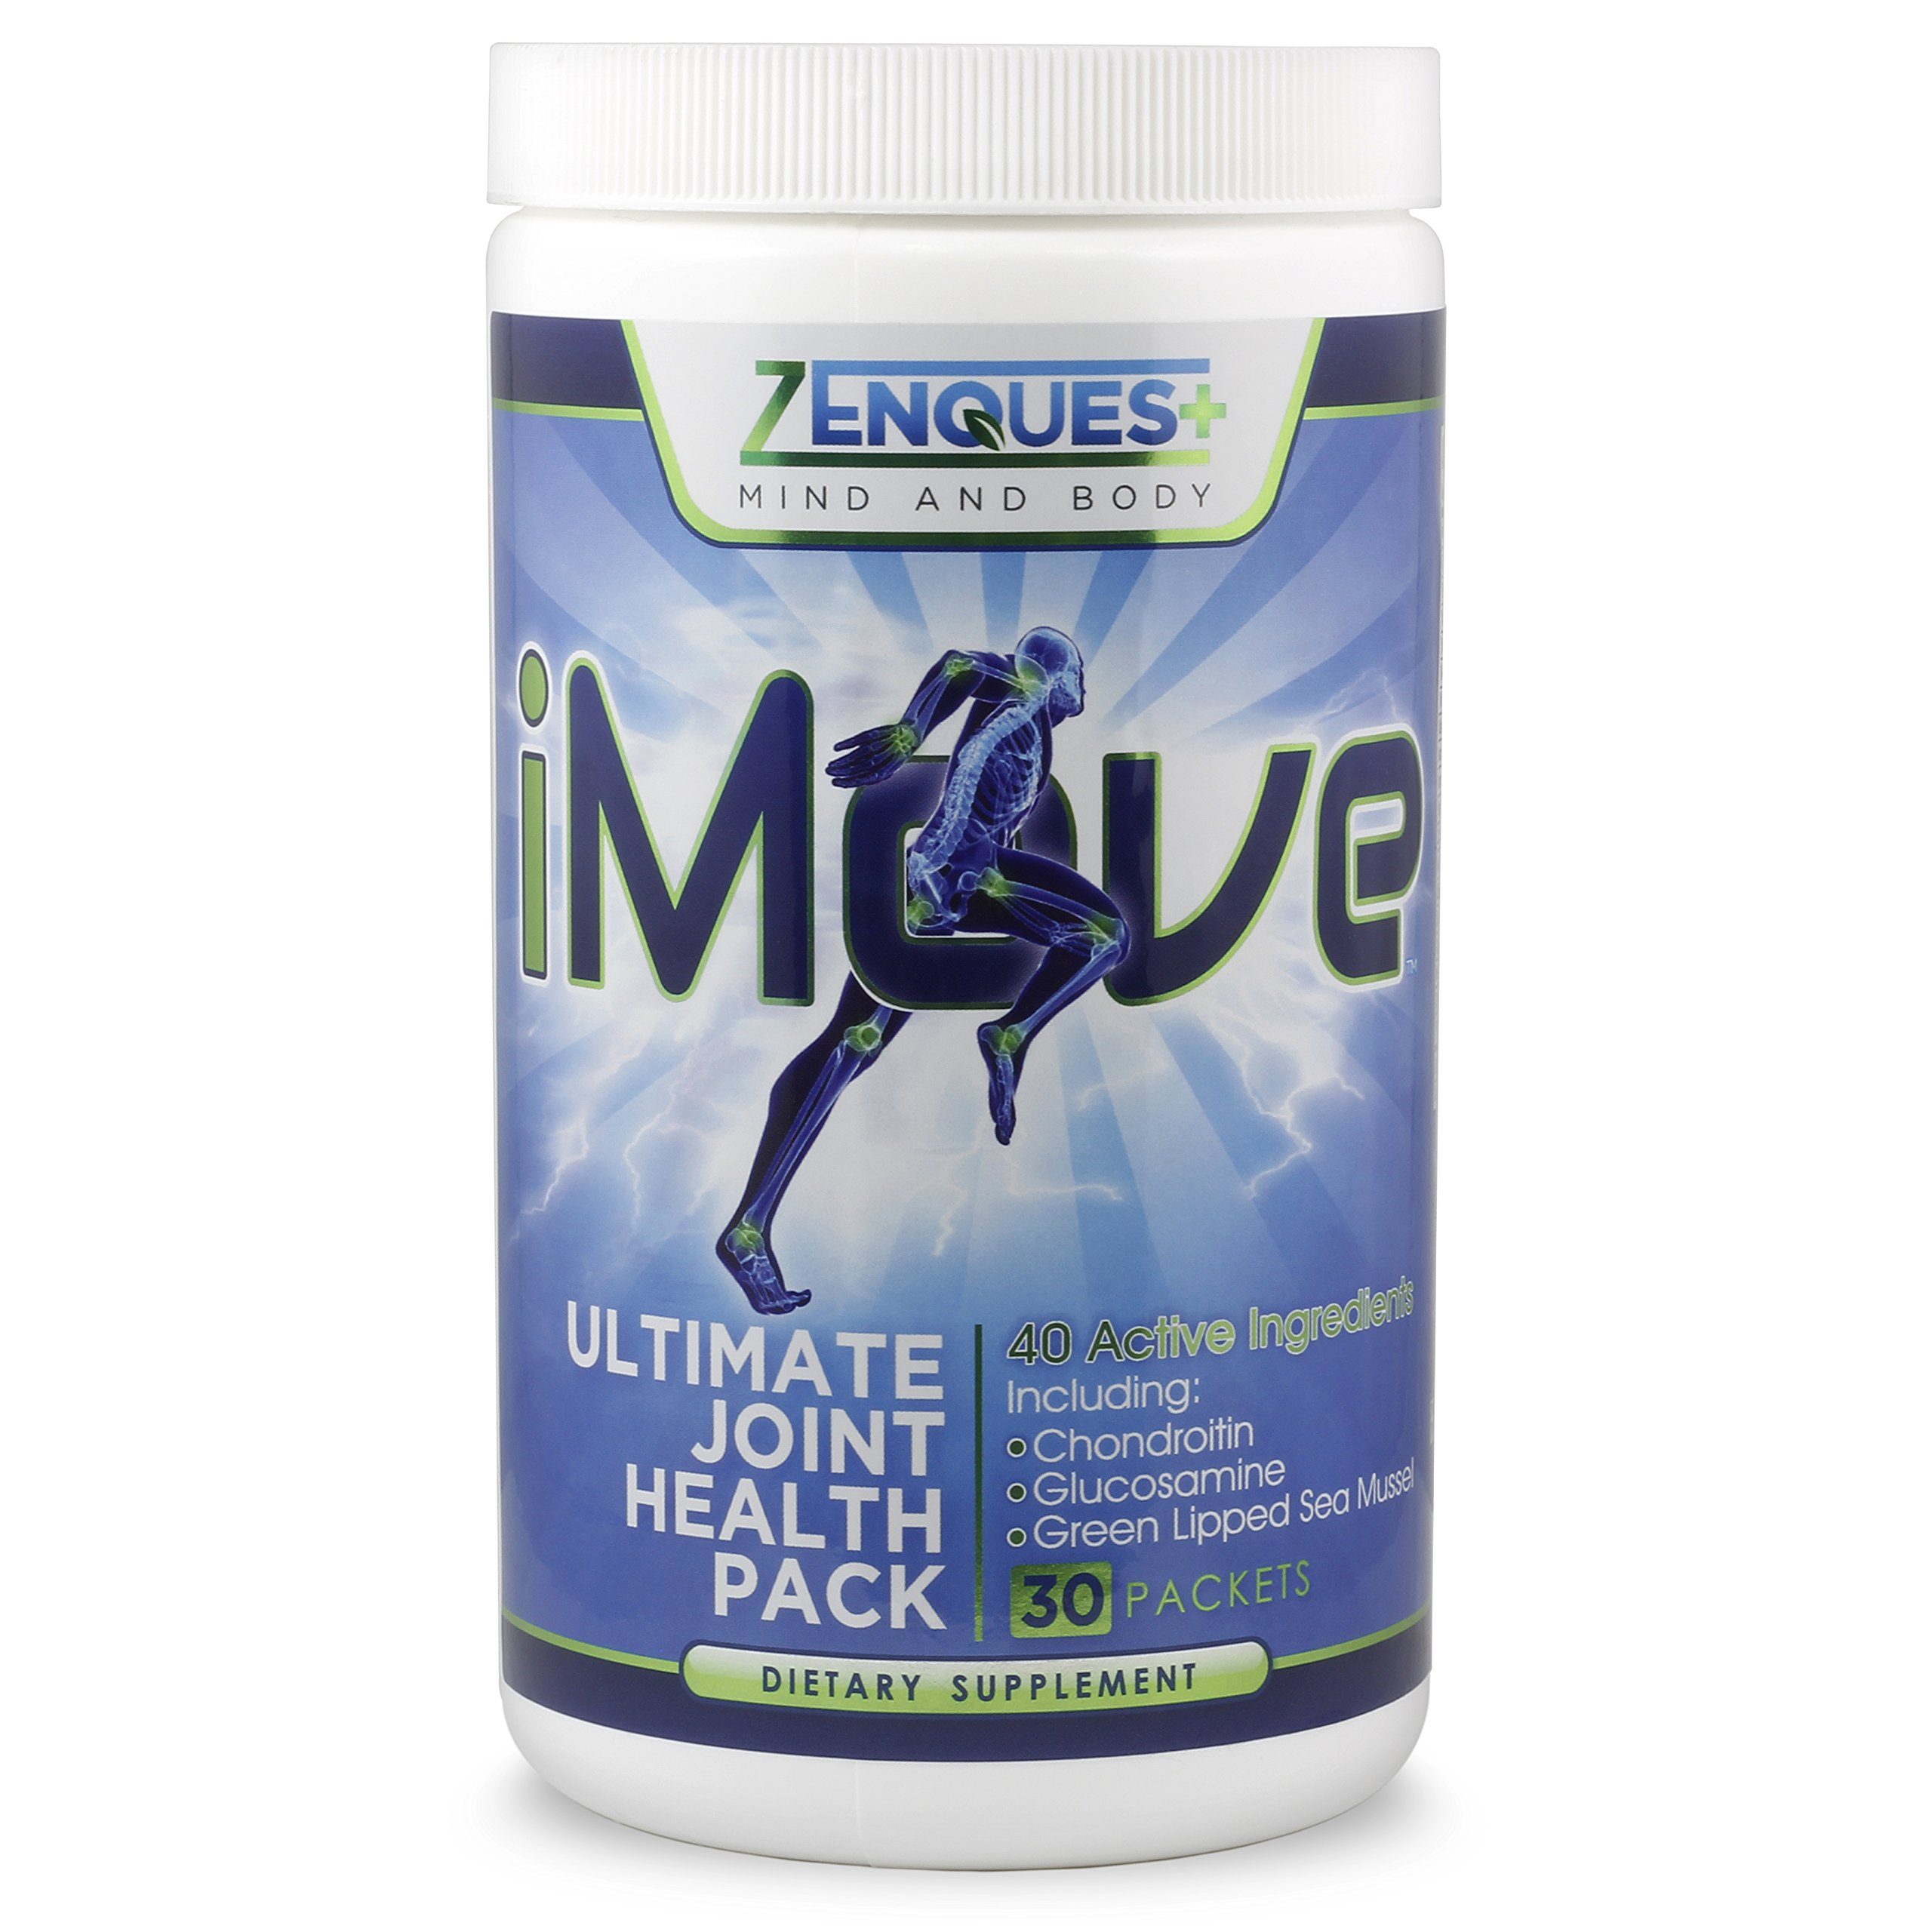 iMove Ultimate Joint Health Supplements- Glucosamine Chondroitin, MSM 1900mg, Turmeric, Boswellia, Hyaluronic Acid, Anti-Inflammatory, Antioxidant, Arthritis Relief for Your Back, Knees, Hands & More